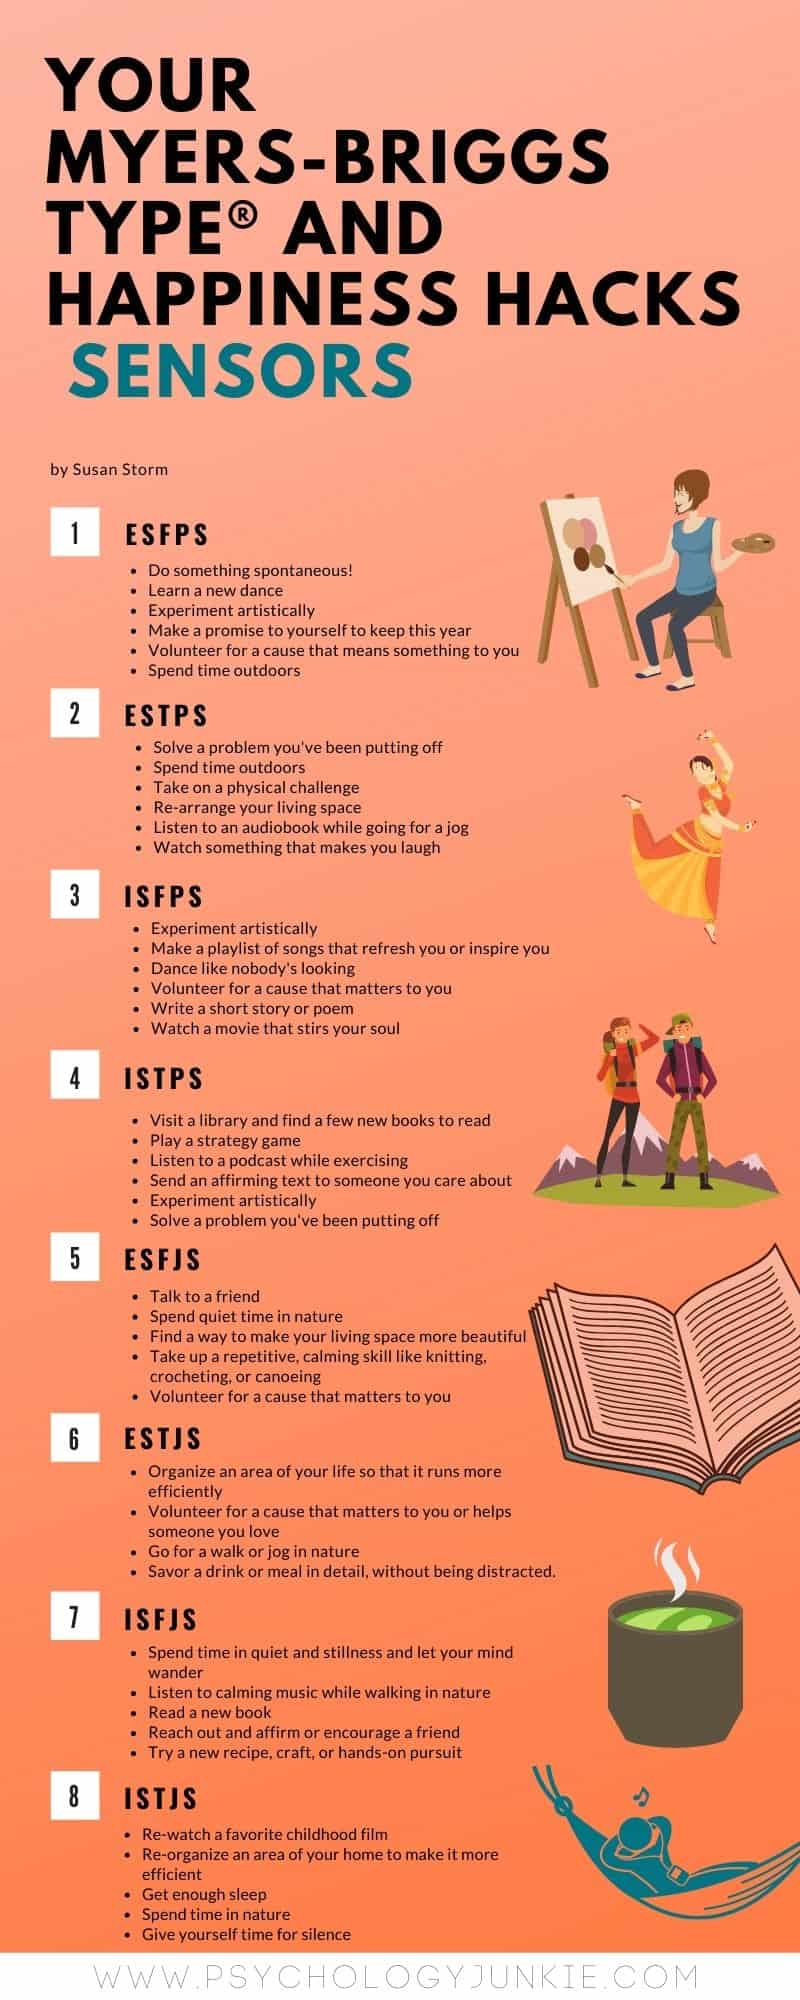 Discover some happiness hacks for the sensing Myers-Briggs personality types. #MBTI #Personality